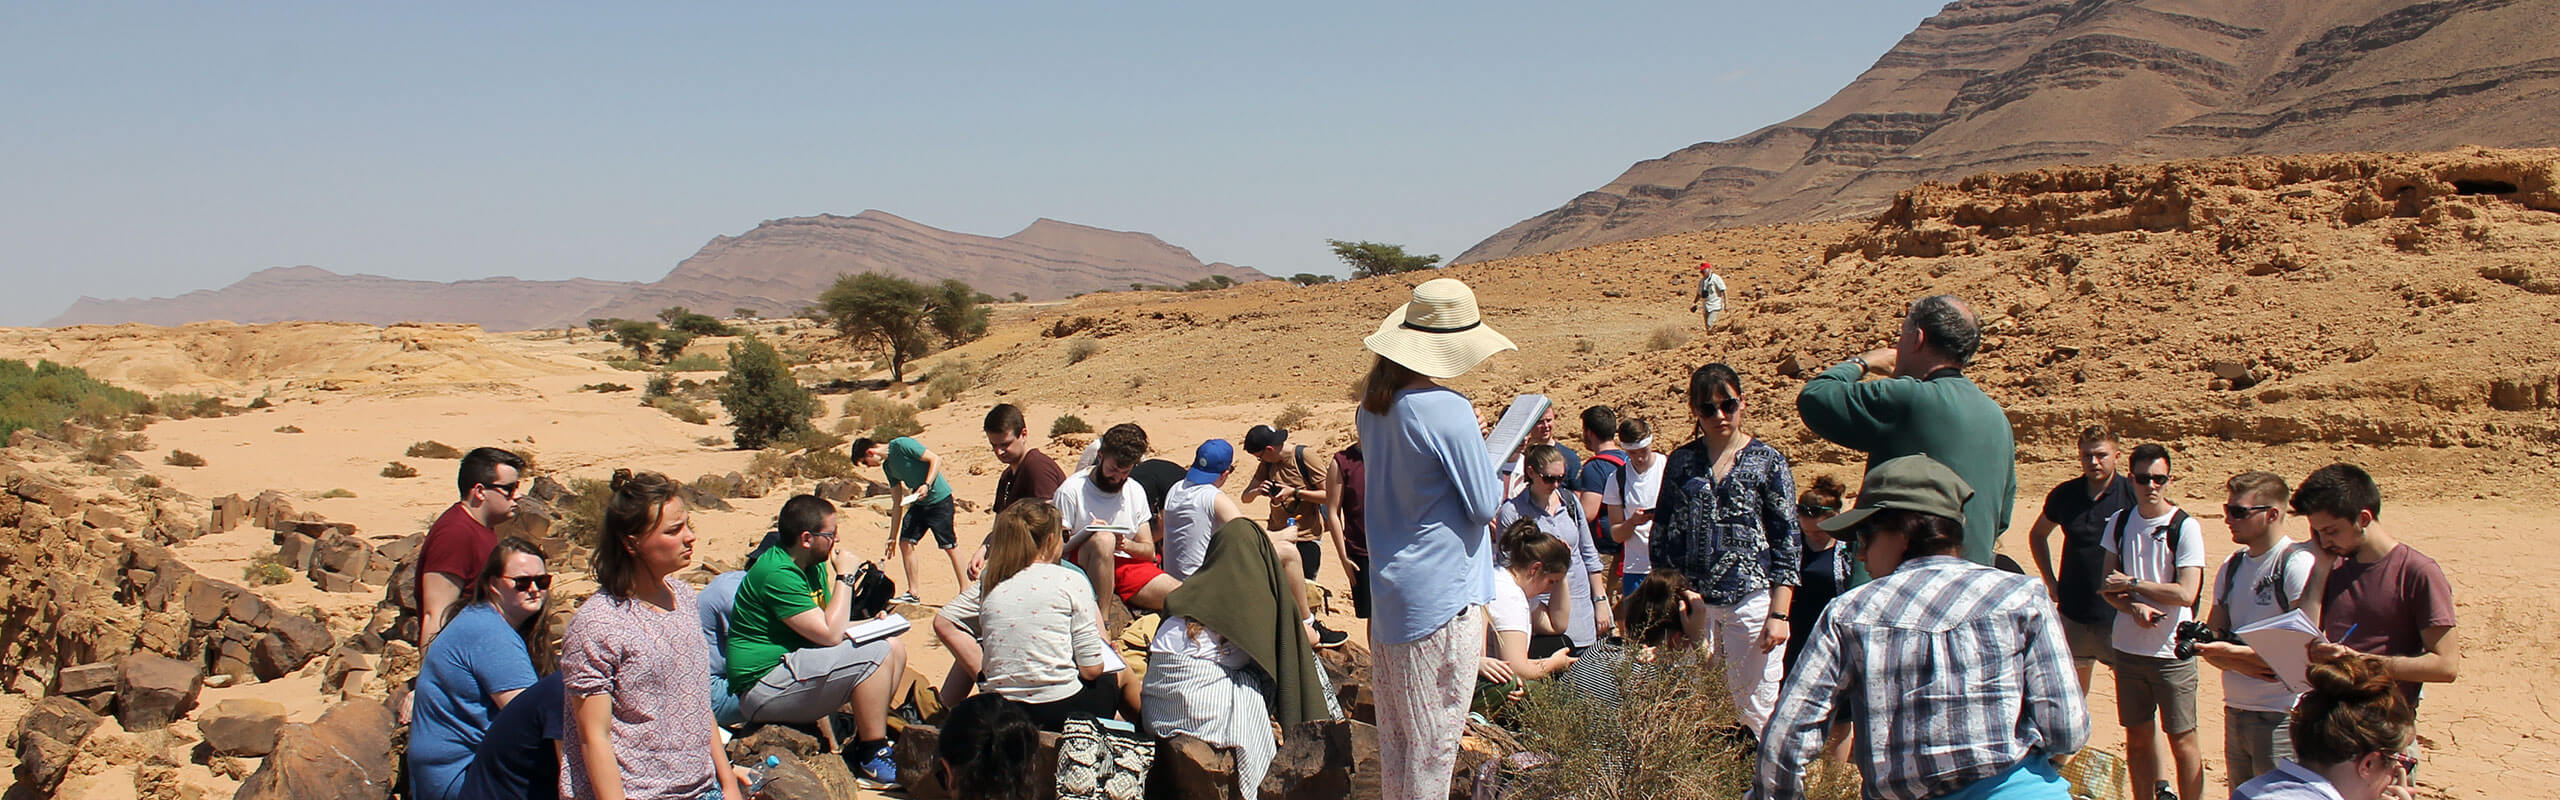 Group of students working in the desert on Morocco fieldtrip